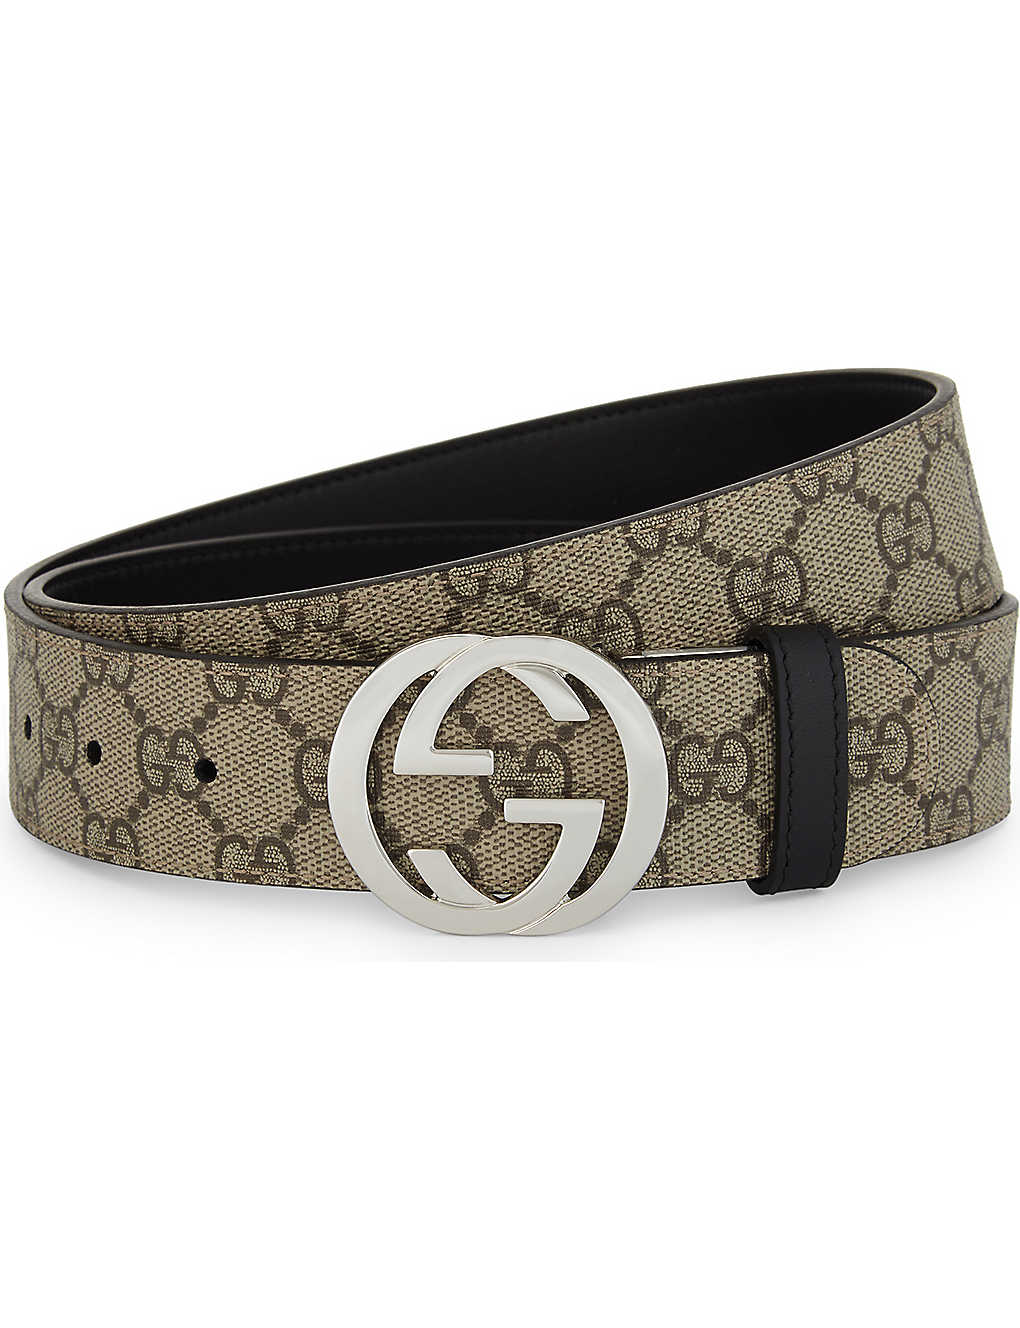 37c78318190 GUCCI - Reversible GG Supreme buckle belt